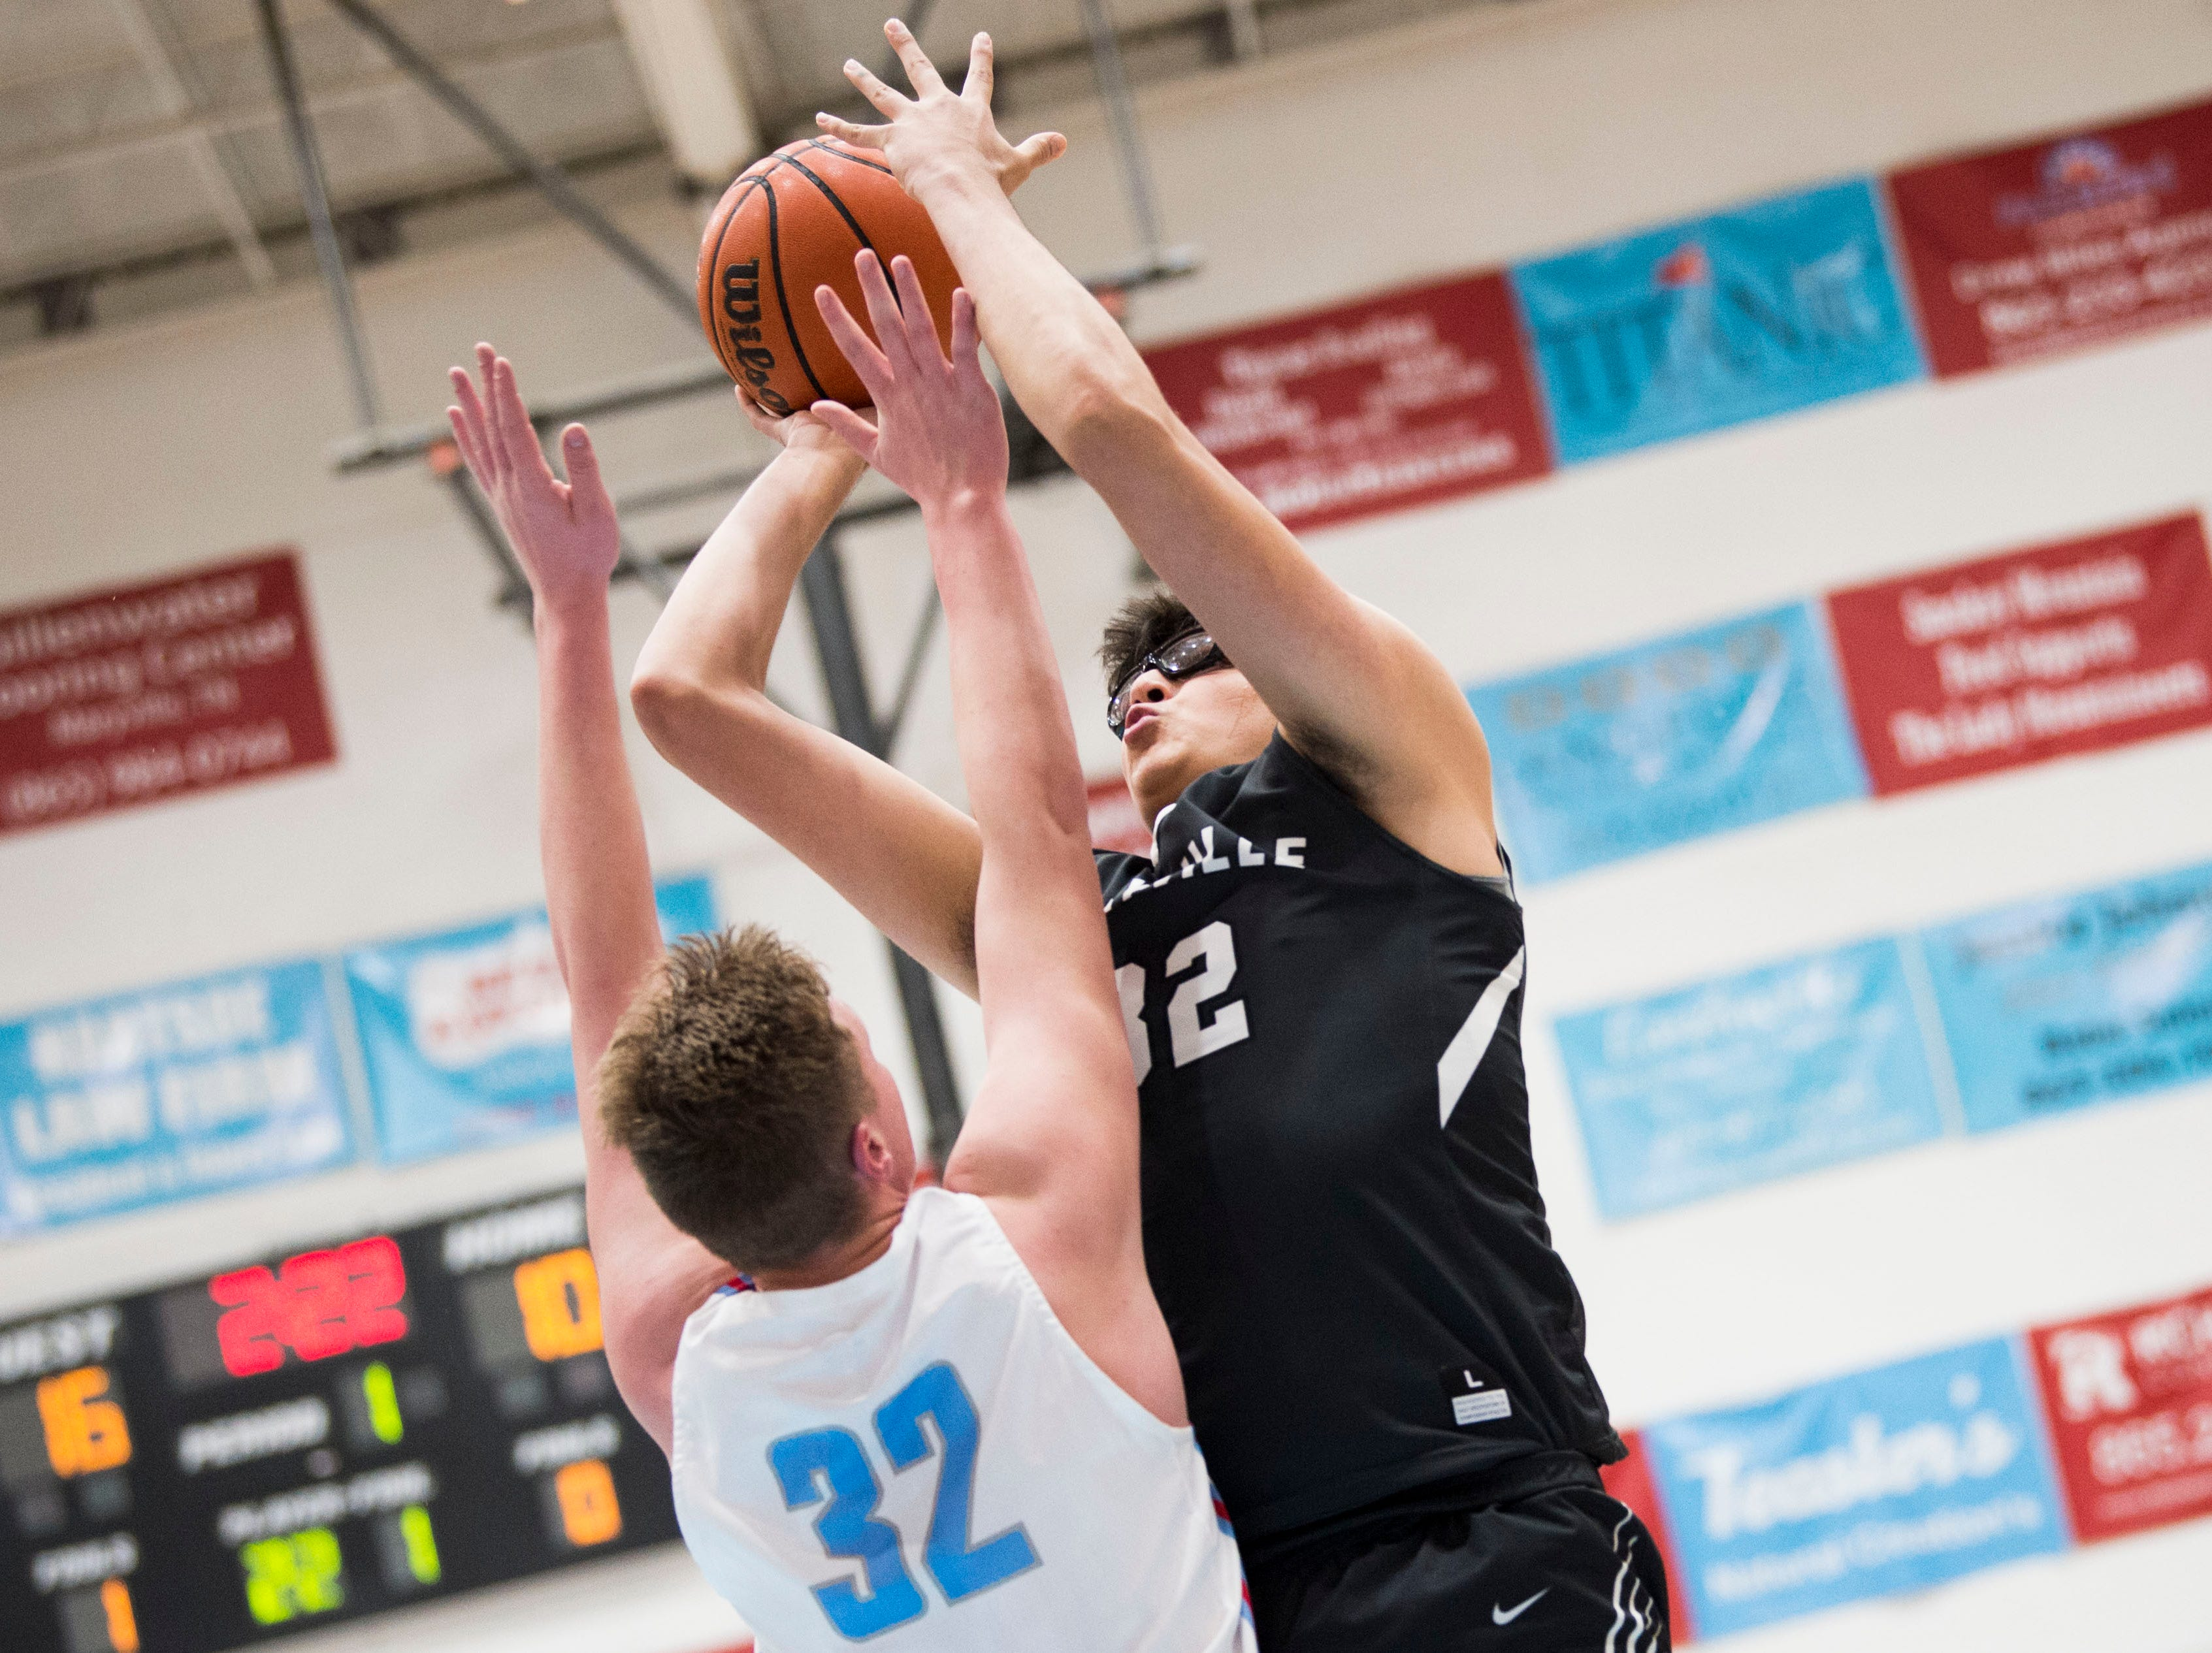 Maryville's Elmaden Gara (32) takes a shot during a high school basketball game between Maryville and Heritage at Heritage Friday, Jan. 4, 2019. Both Maryville boys and girls teams beat Heritage.